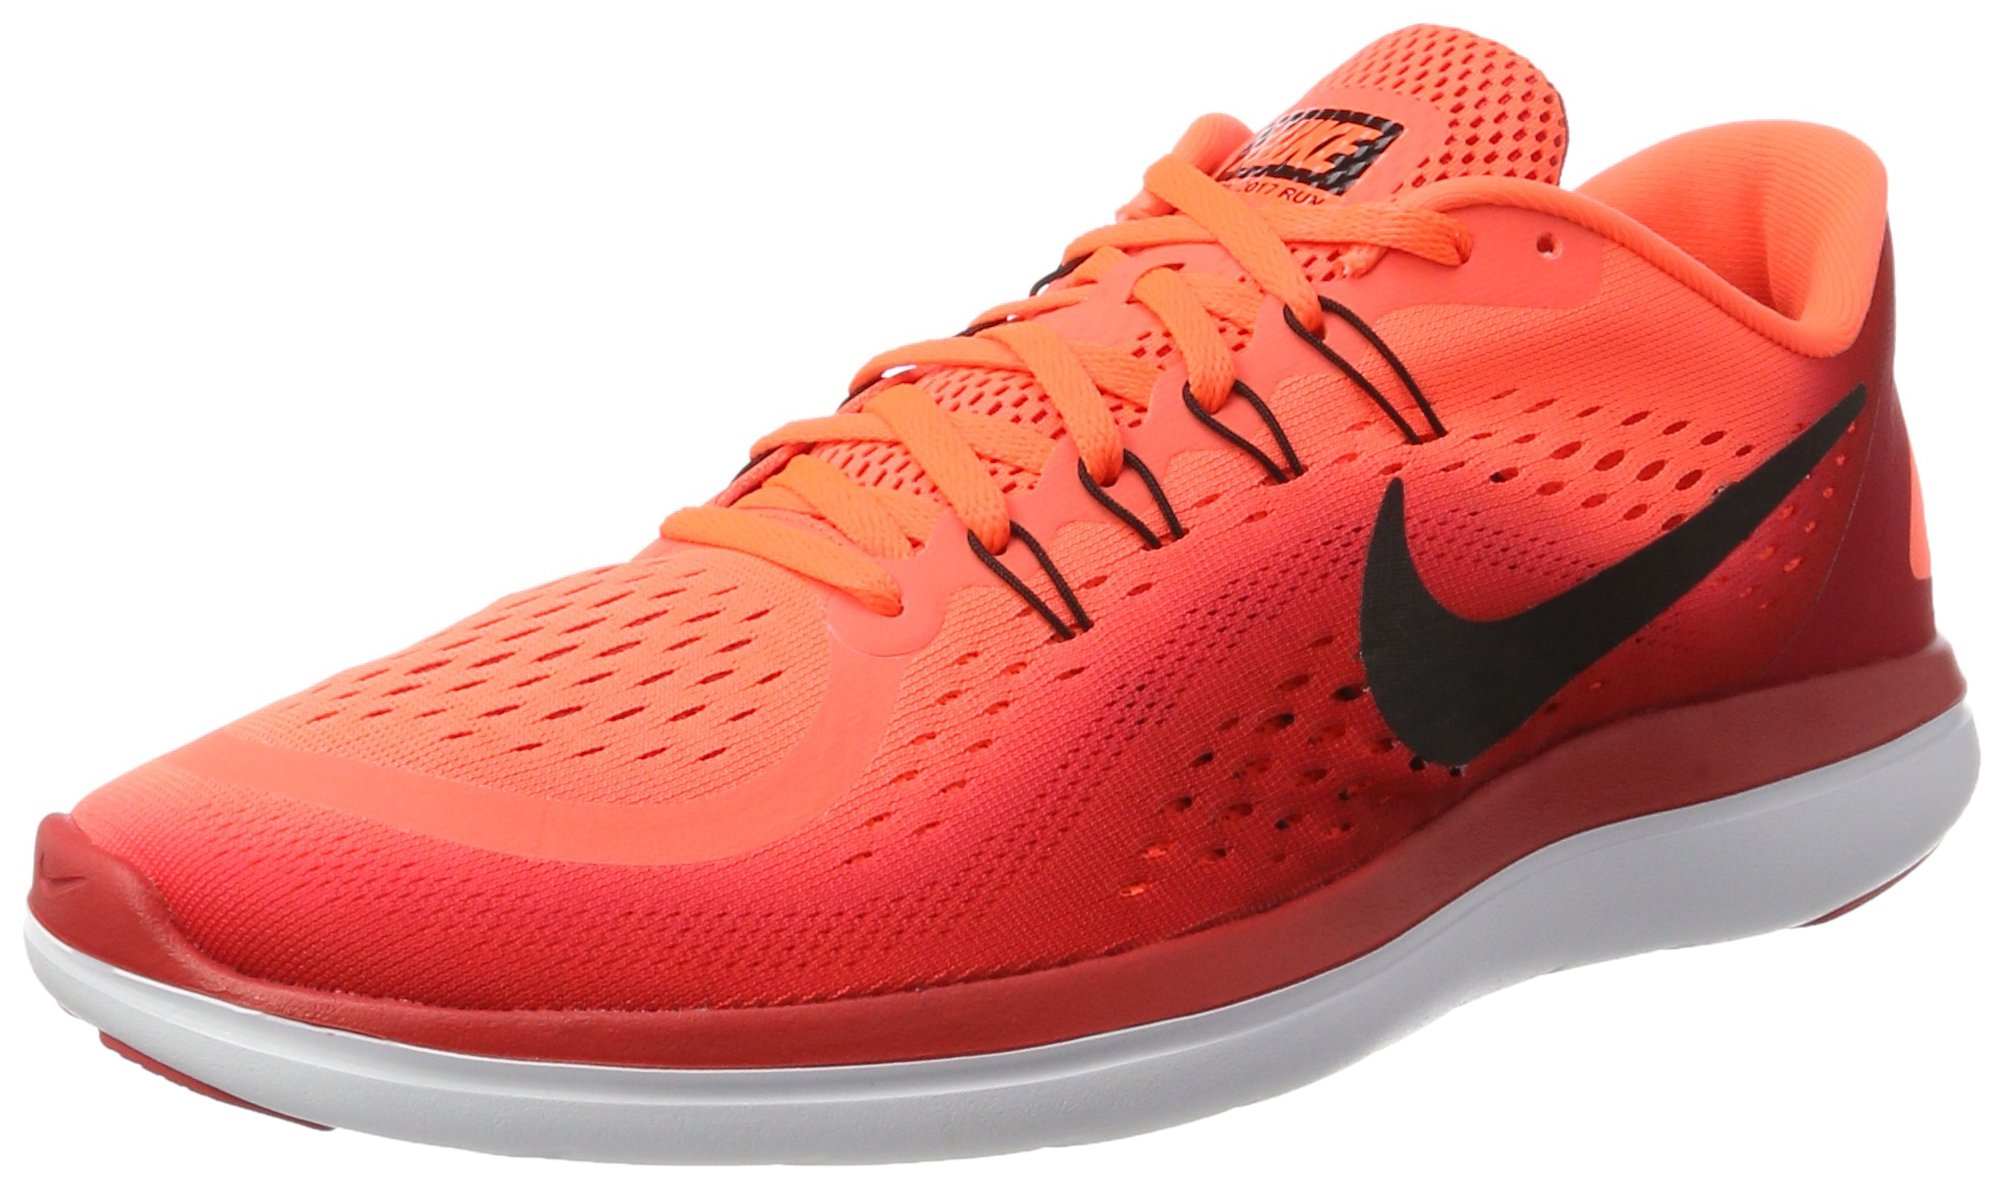 NIKE Flex 2017 RN (15 D US, Hyper Orange/Black) by NIKE